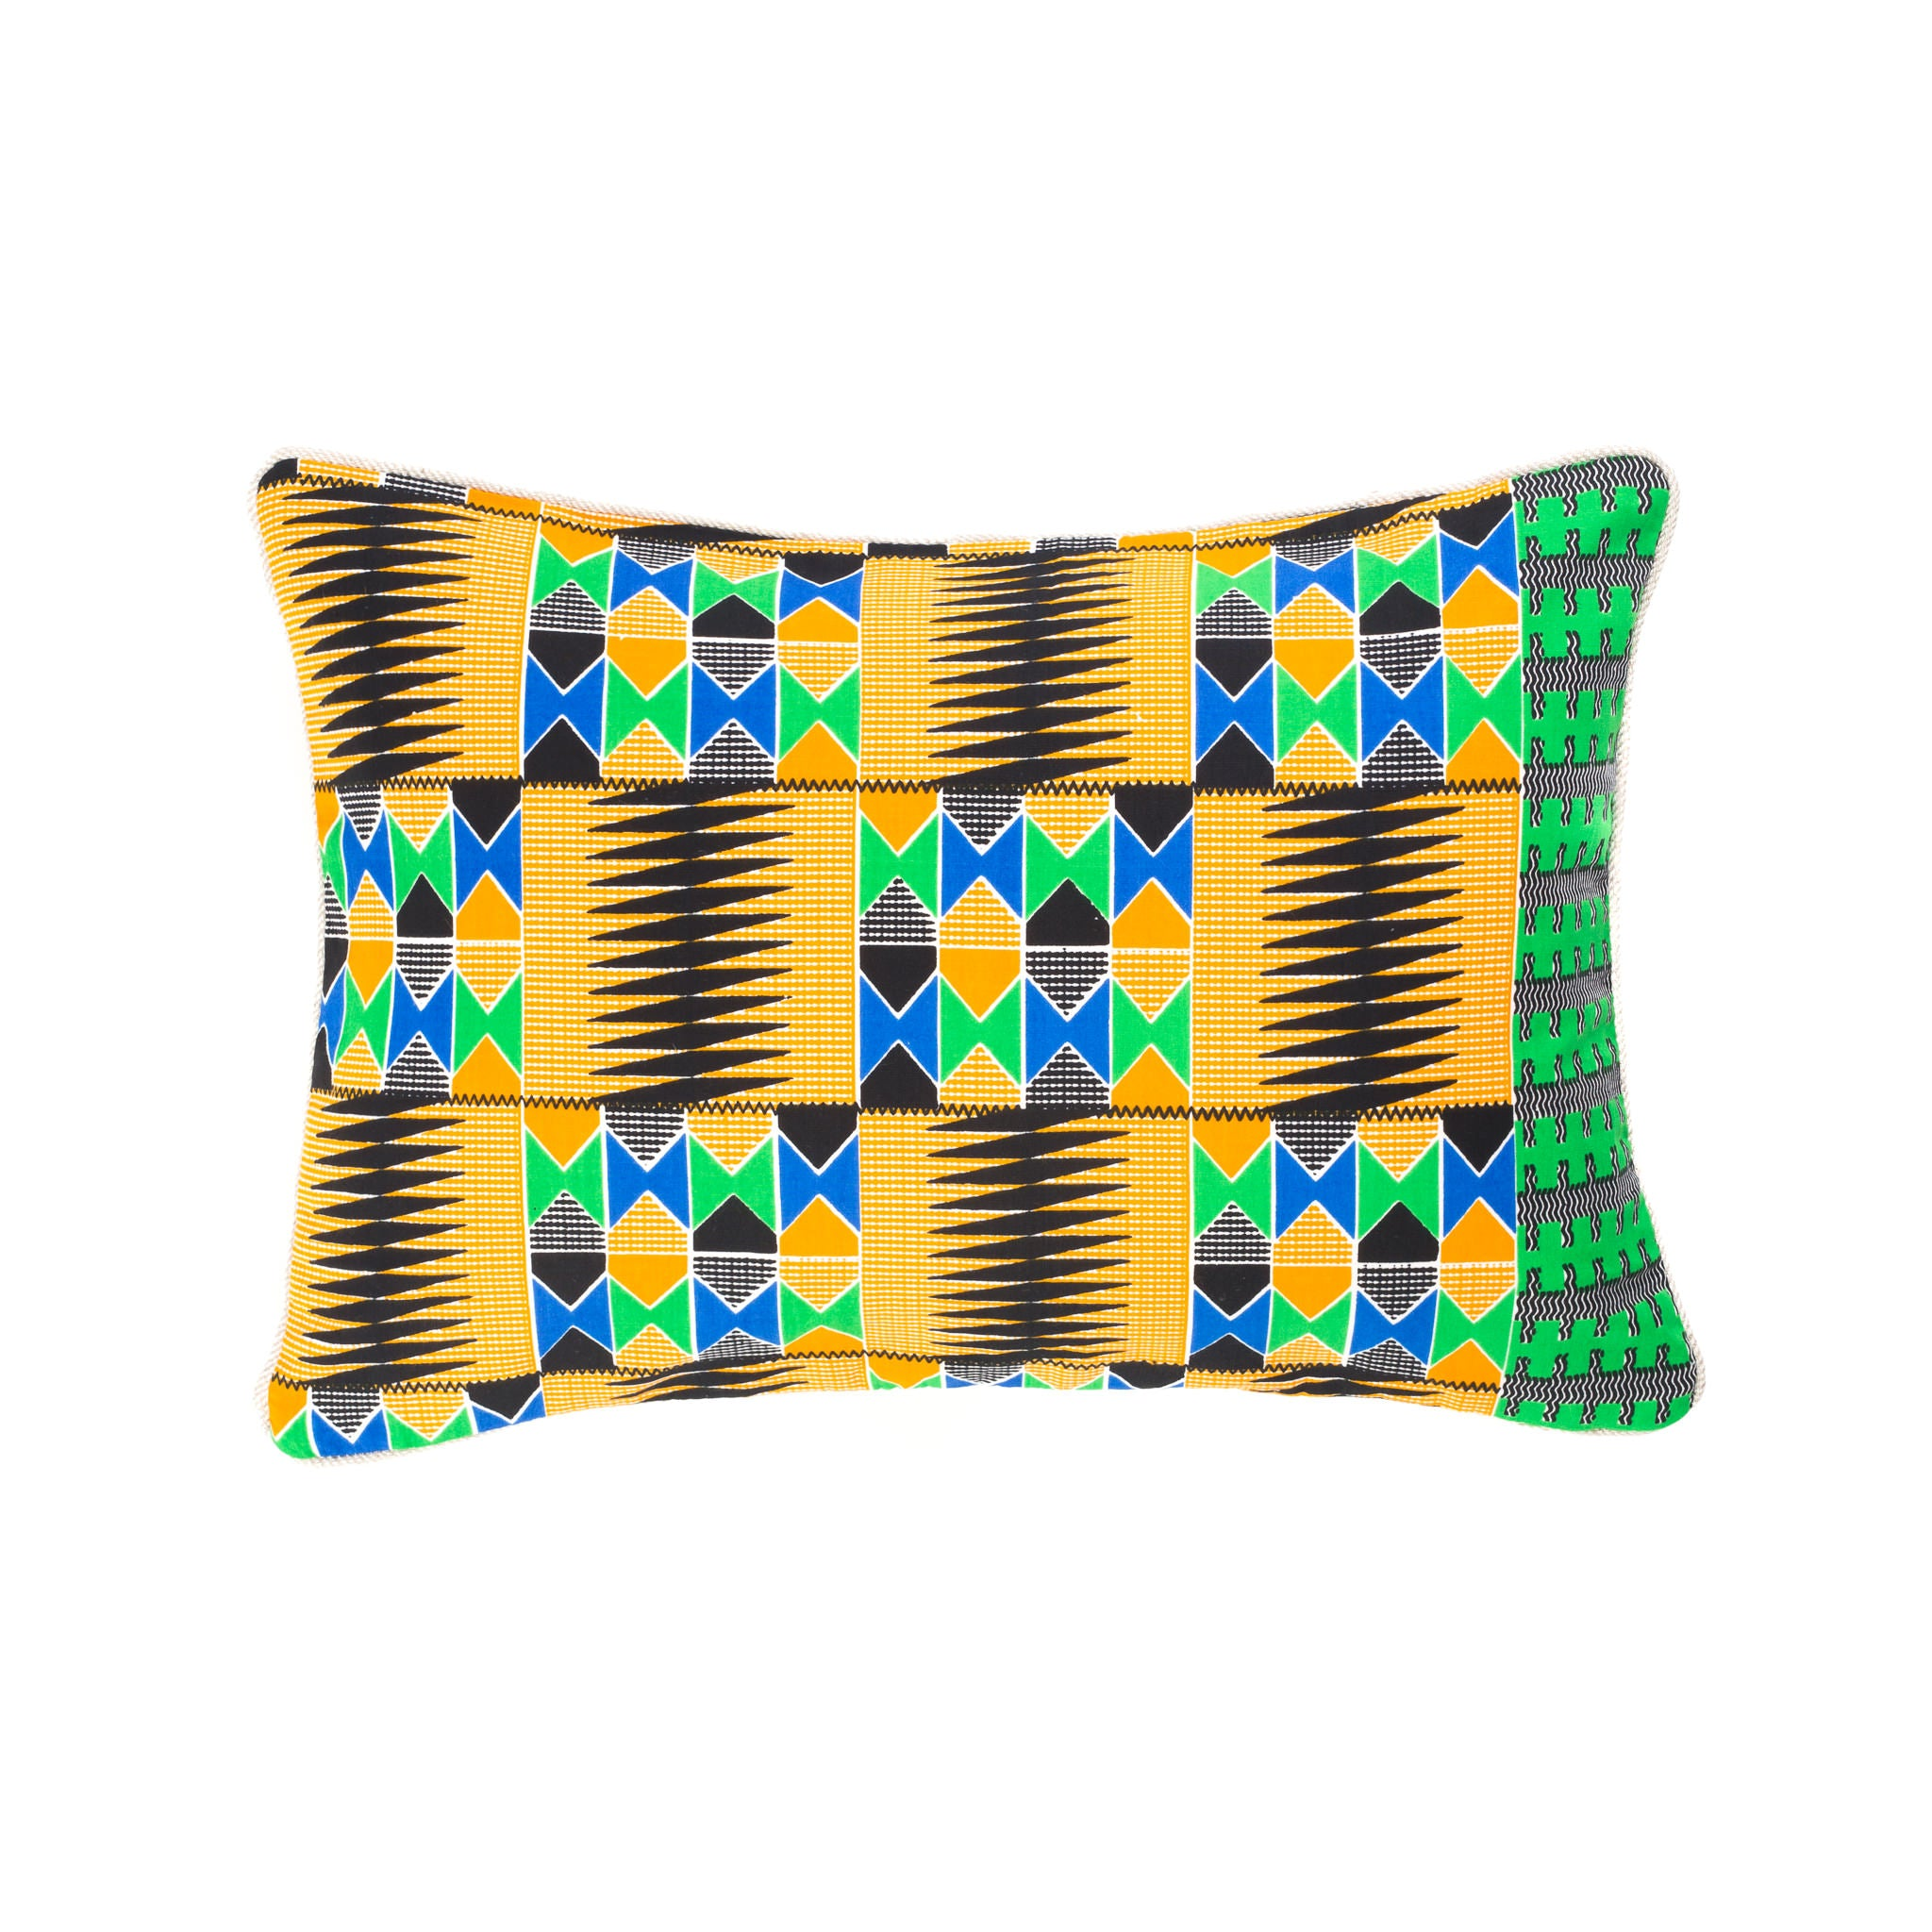 Kente/Printed/Cotton/Ghana/Africa/Scatter/Cushion/Mustard/Yellow/Green/Blue/Black/Pattern/